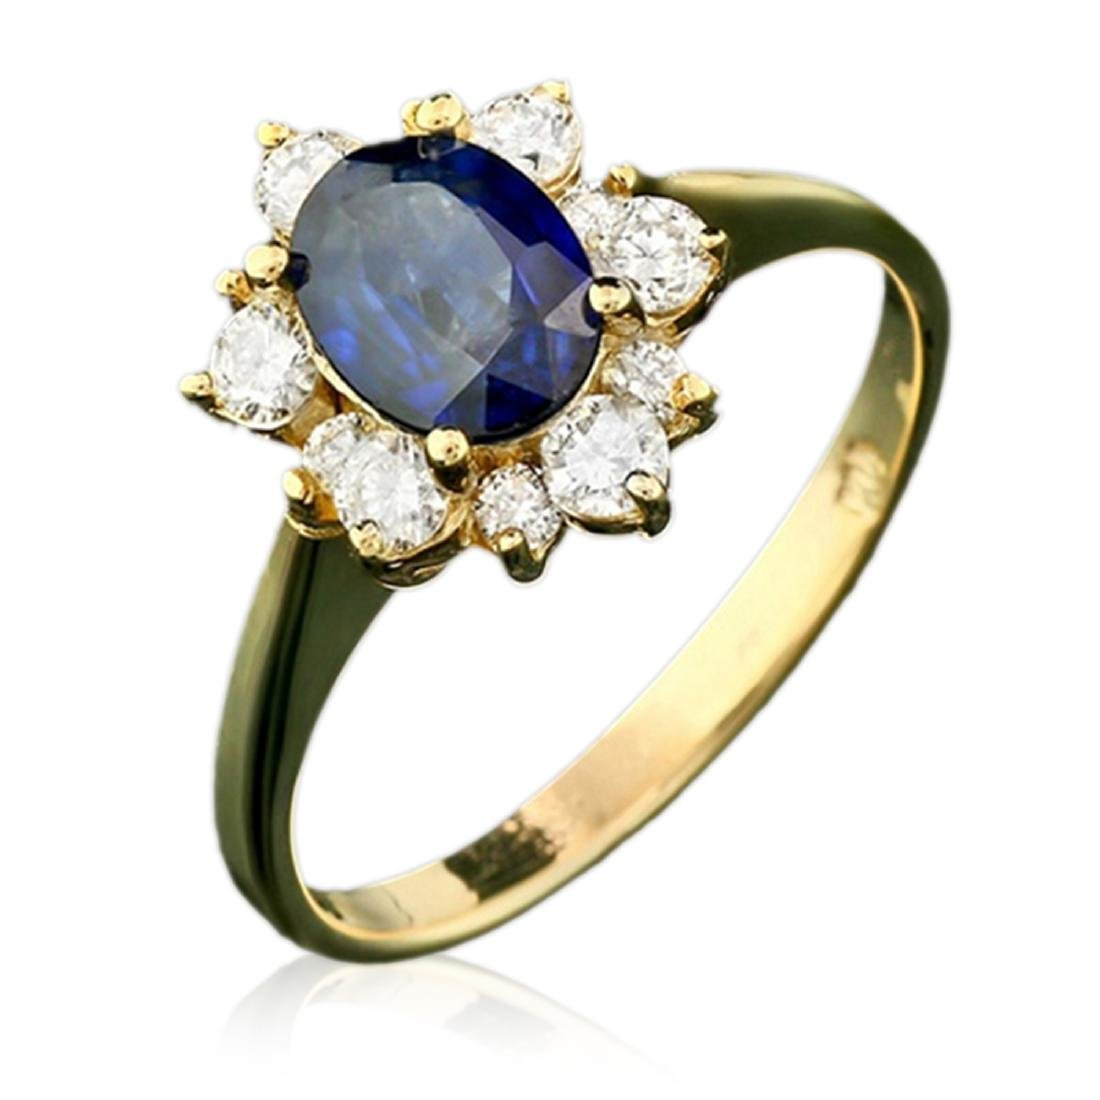 2.10 Carat Natural Sapphire 18K Solid Yellow Gold